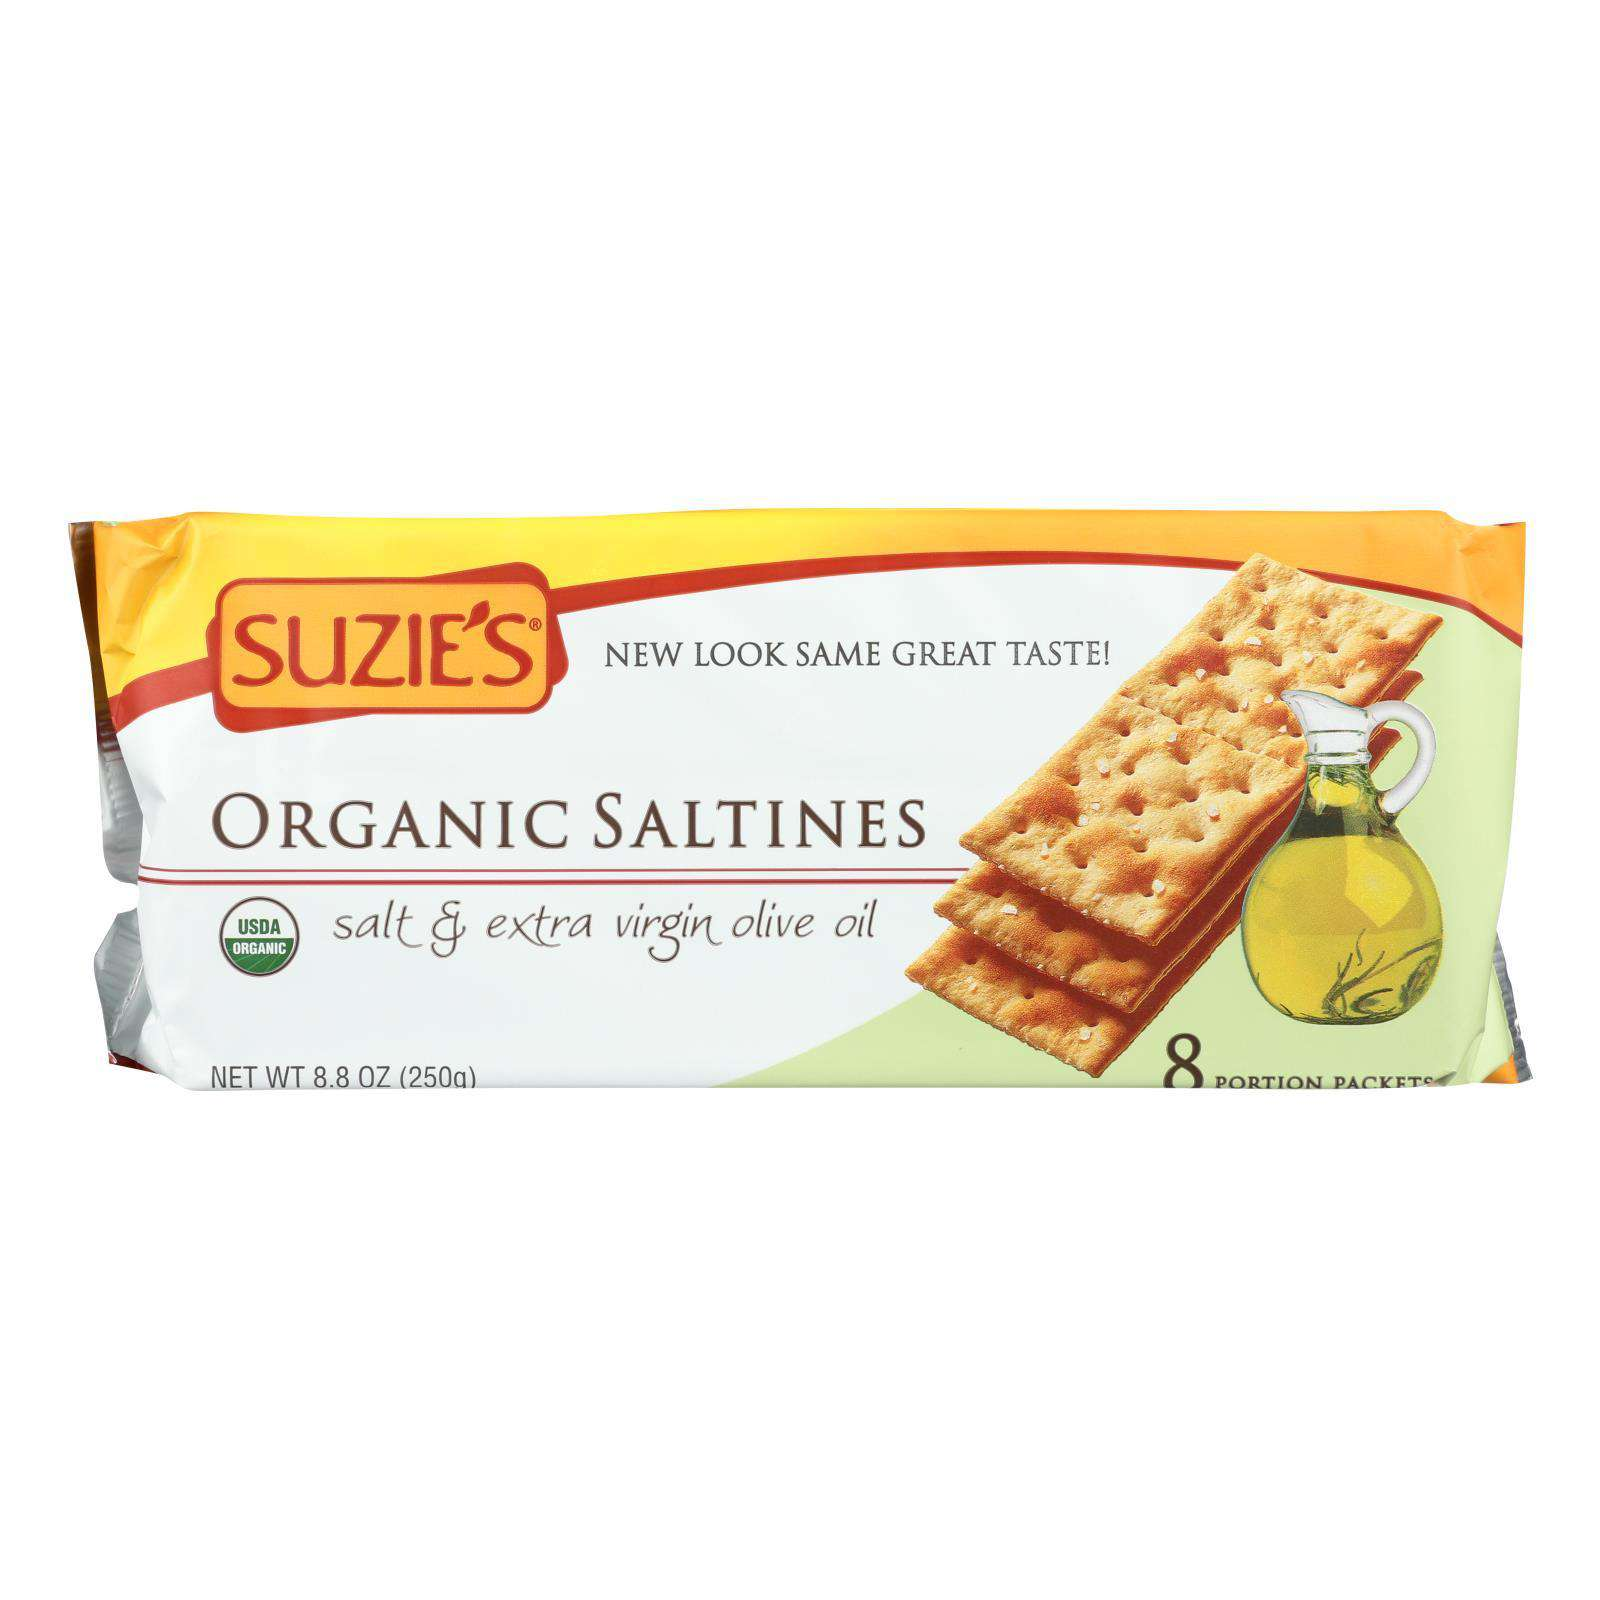 Suzie's Organic Saltines - Salt And Extra Virgin Olive Oil - Case Of 12 - 8.8 Oz. - BeeGreen